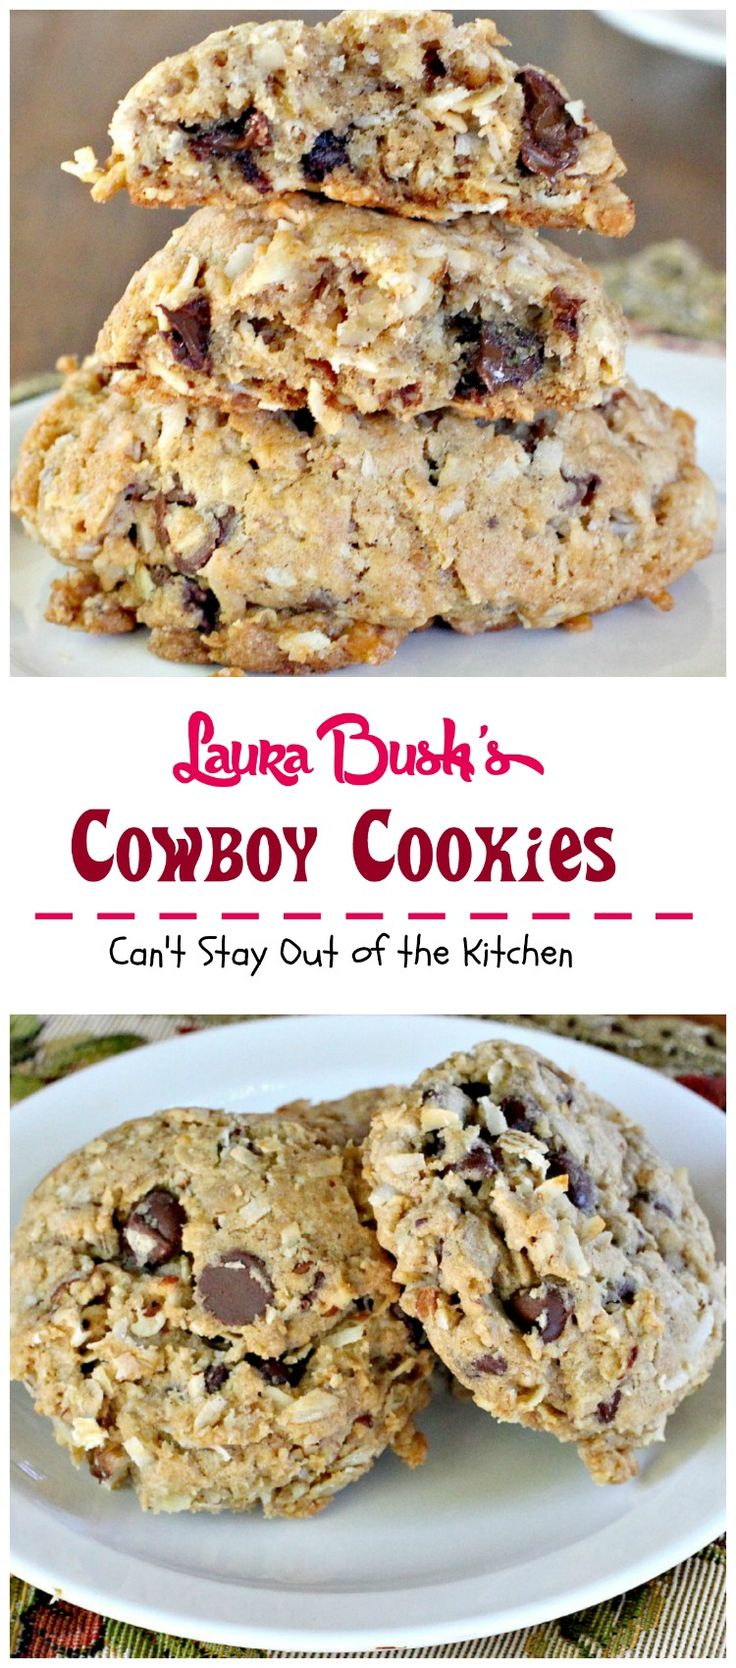 Laura Bush's Cowboy Cookies | these fabulous cookies were a presidential winner!!!!!!!